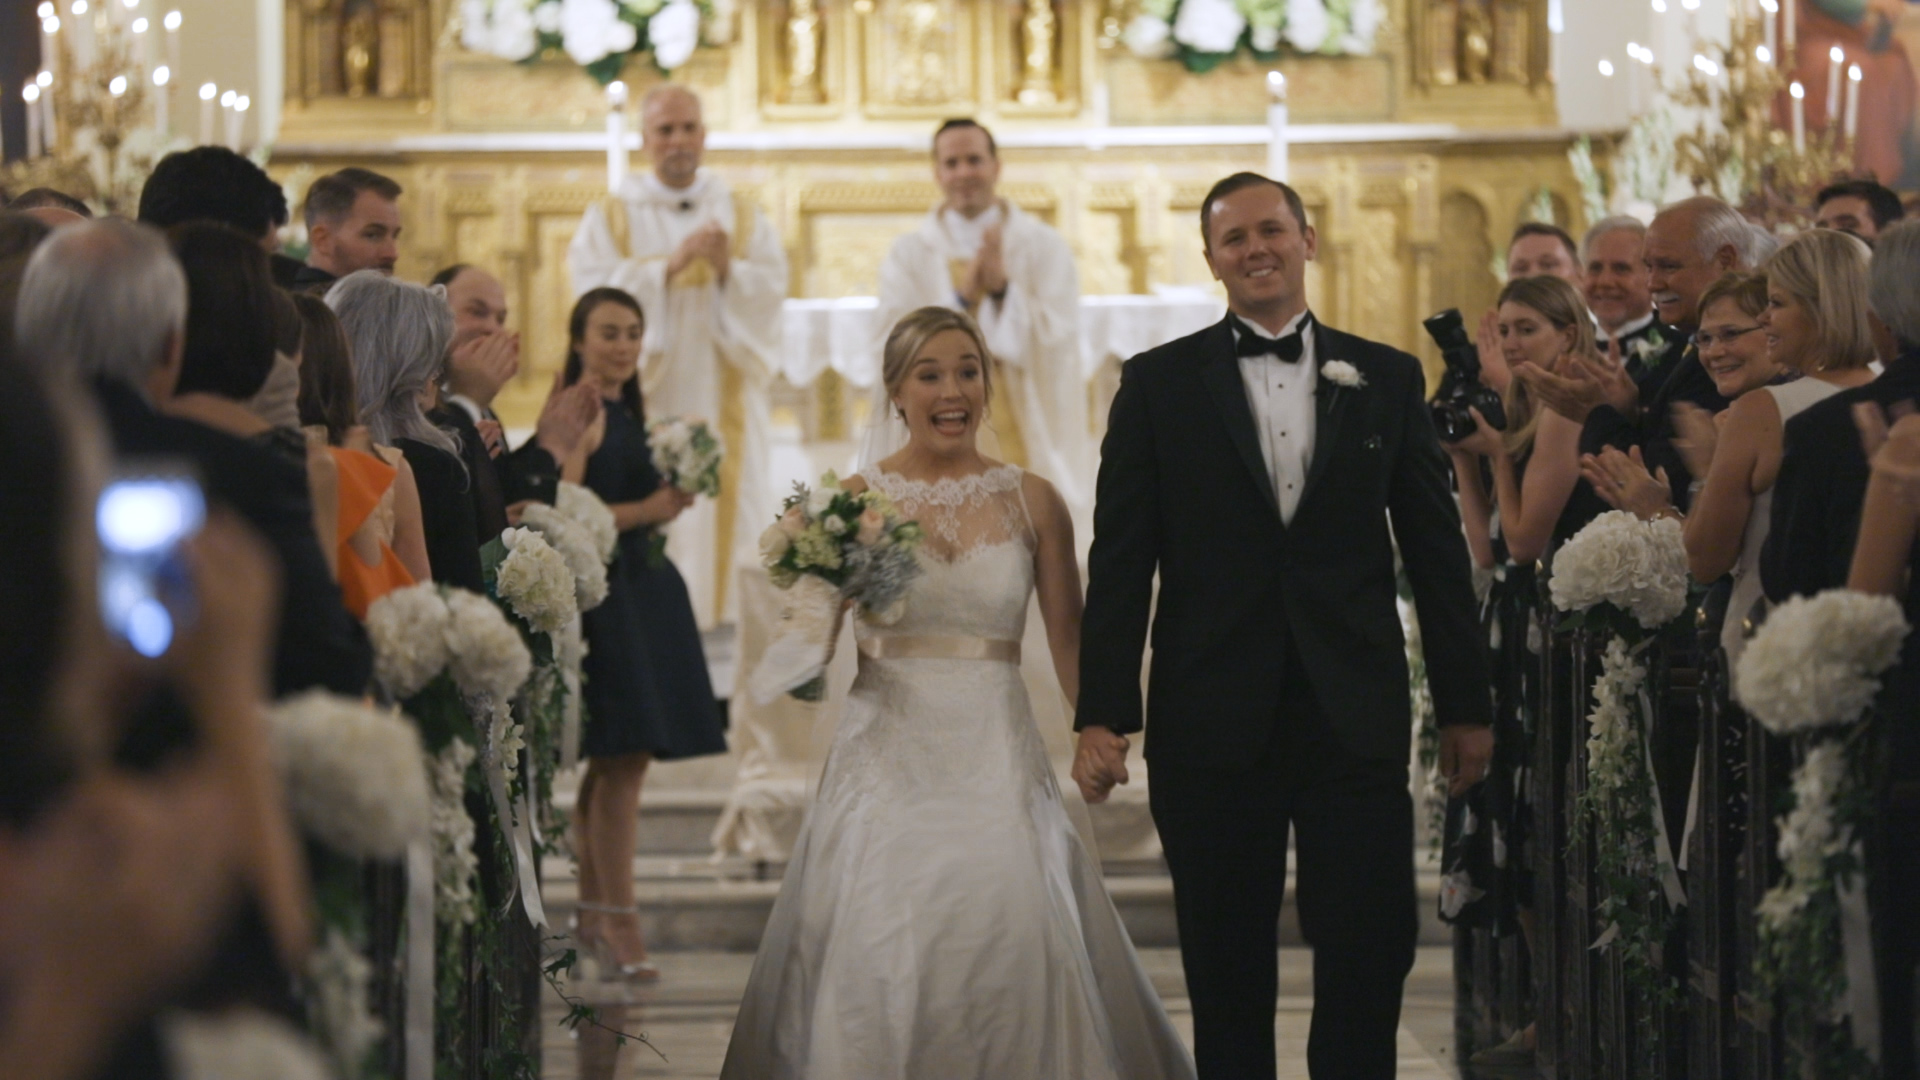 New Orleans Immaculate Conception Wedding - Bride Film